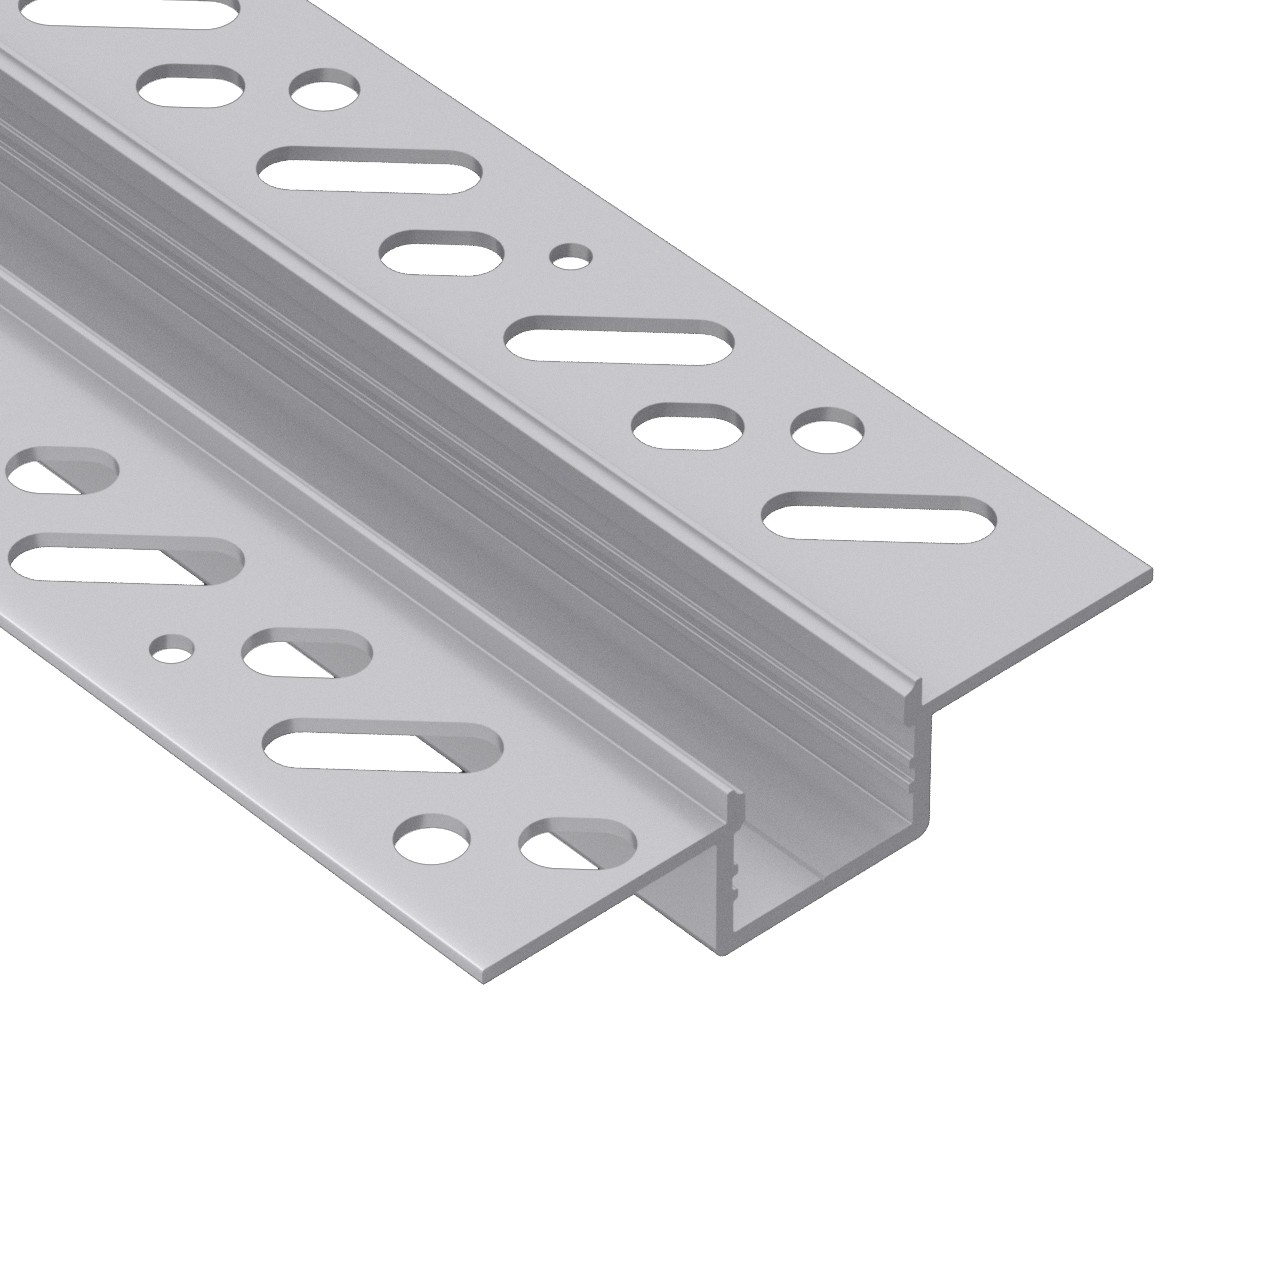 CT5 Trimless Aluminium Extrusions for recessing into plasterboard walls and ceilings 58.9x13.7mm